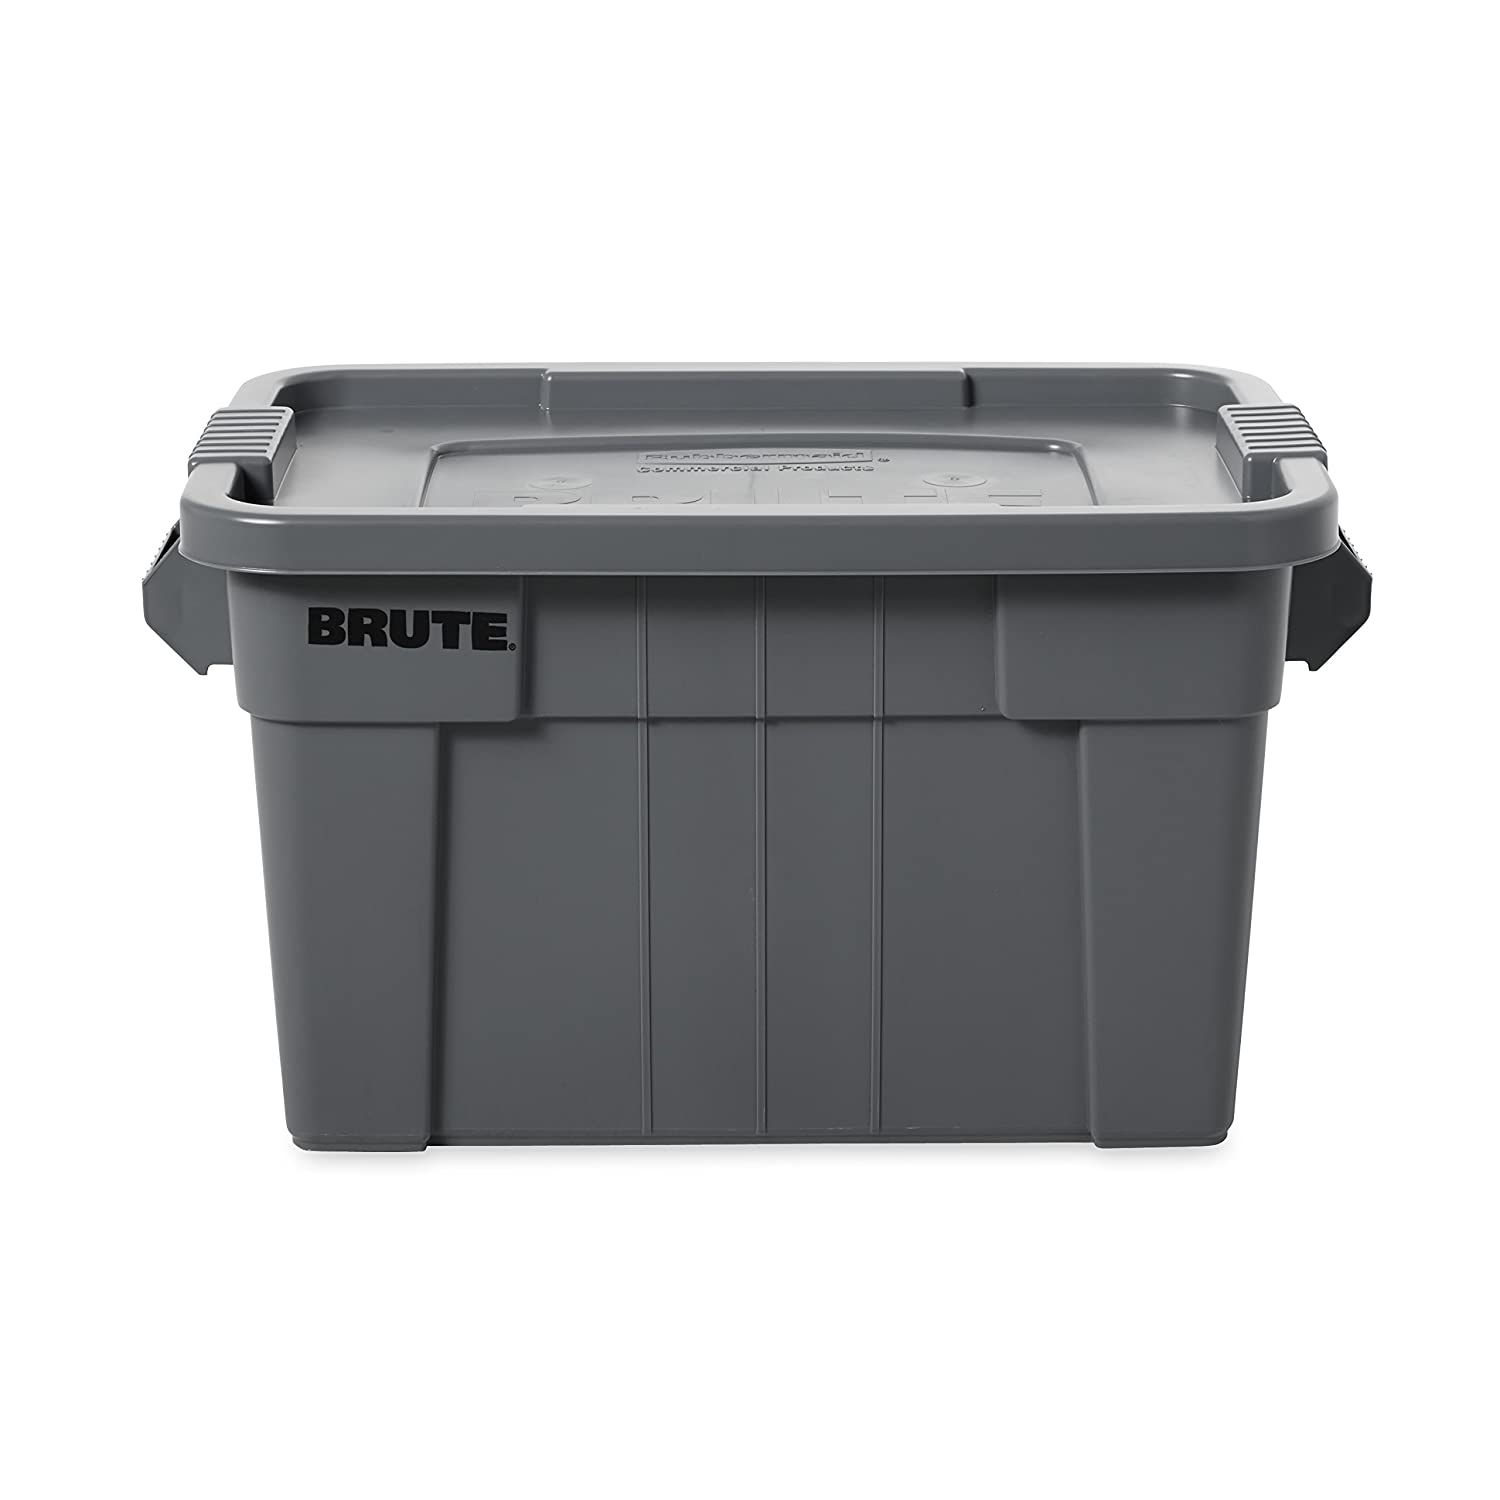 drains carts storage processing red tub rectangular available white with yellow green material drain trucks in premium lbs food and tubs blue supplies capacity transport ultrasource handling or without industrial rectanglestoragetub